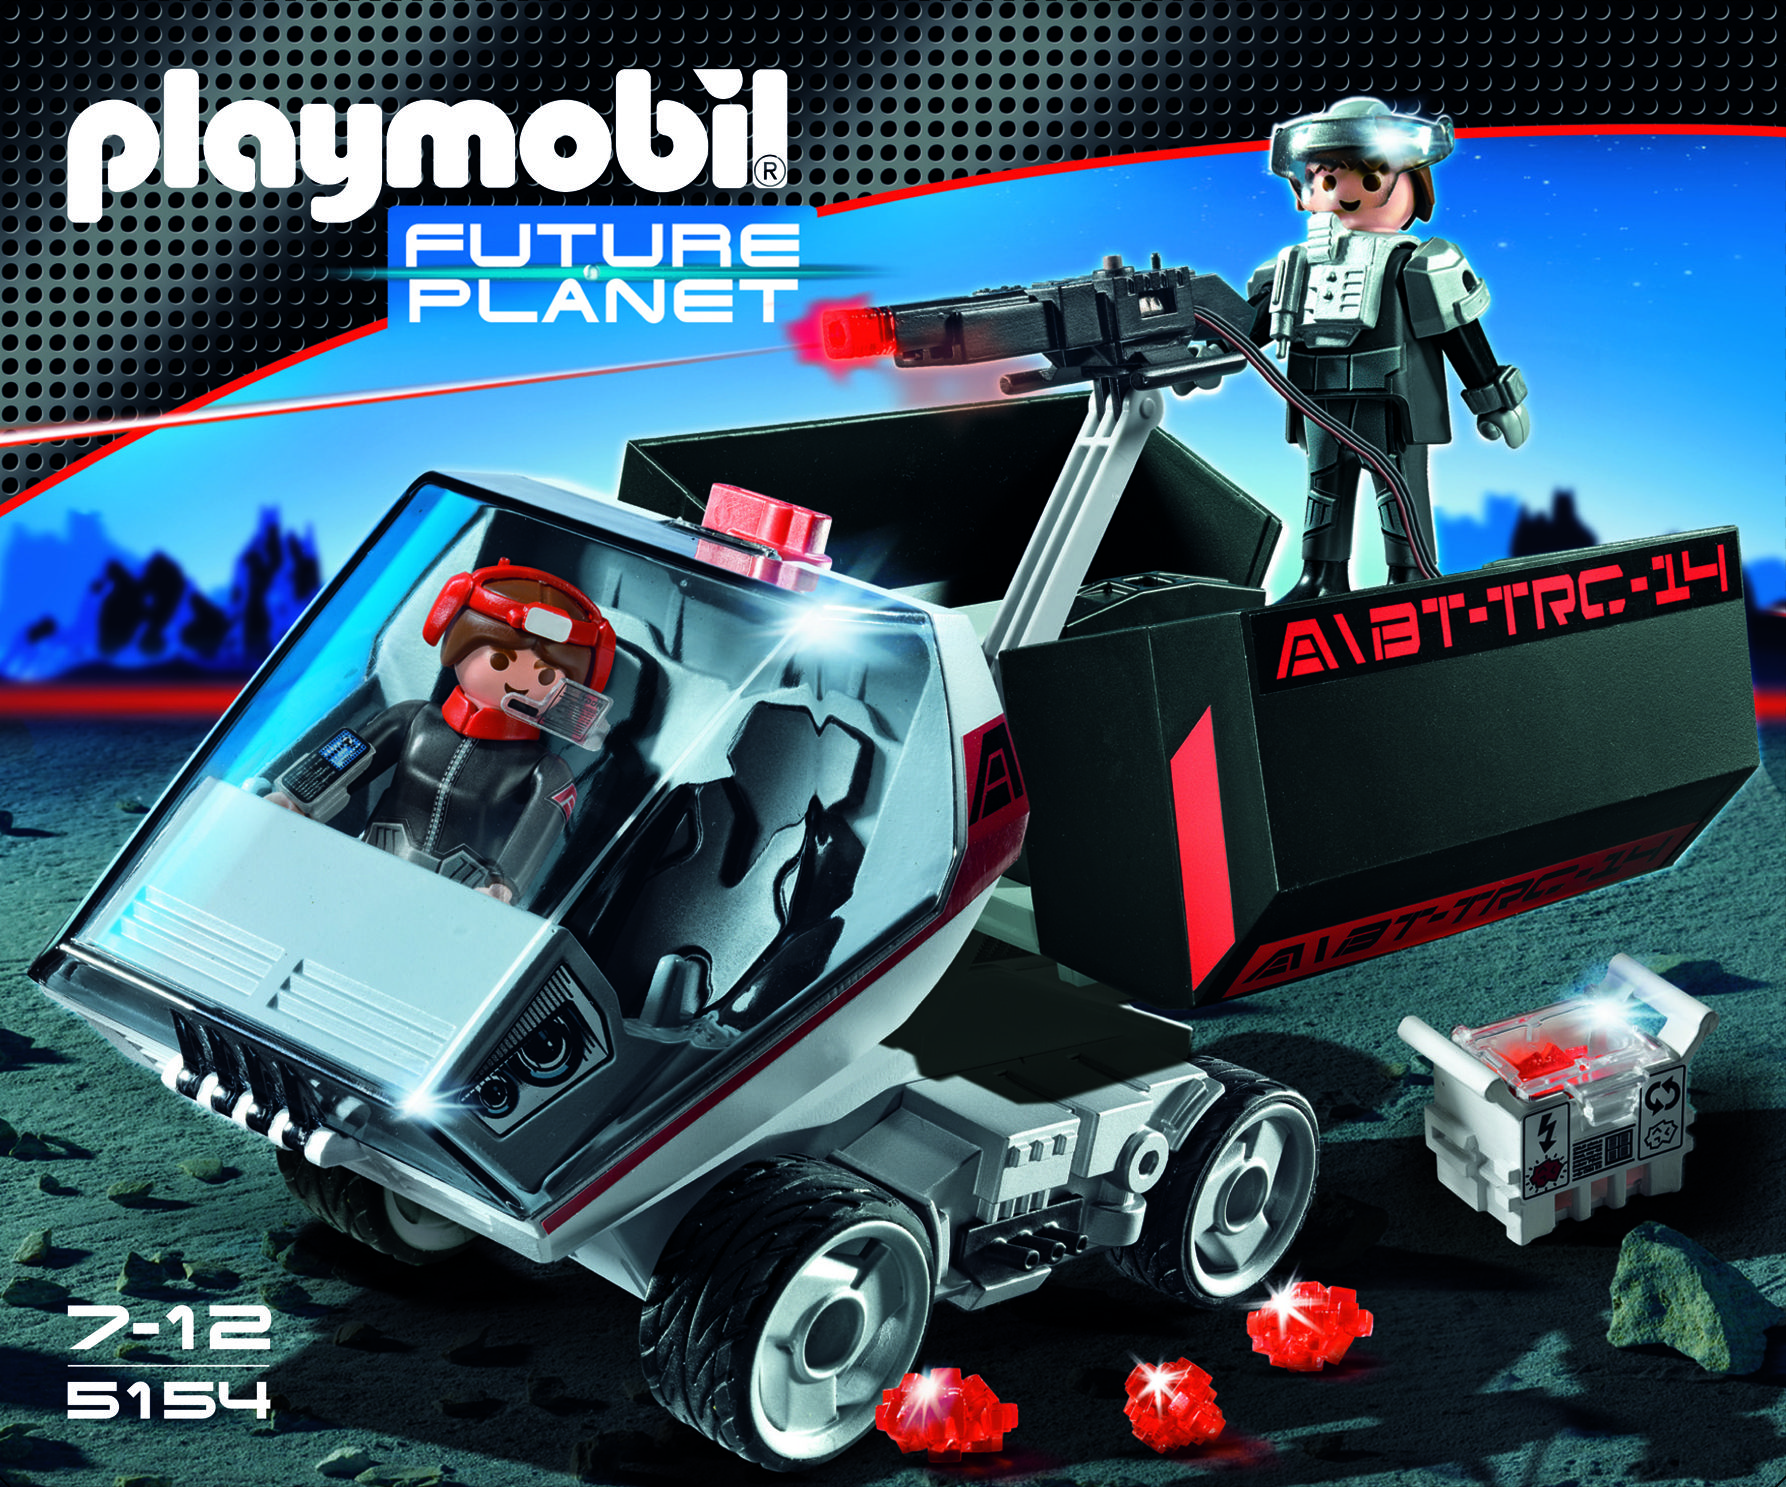 Ausmalbilder Playmobil Future Planet : 5156 Darkster Playmobil Future Planet